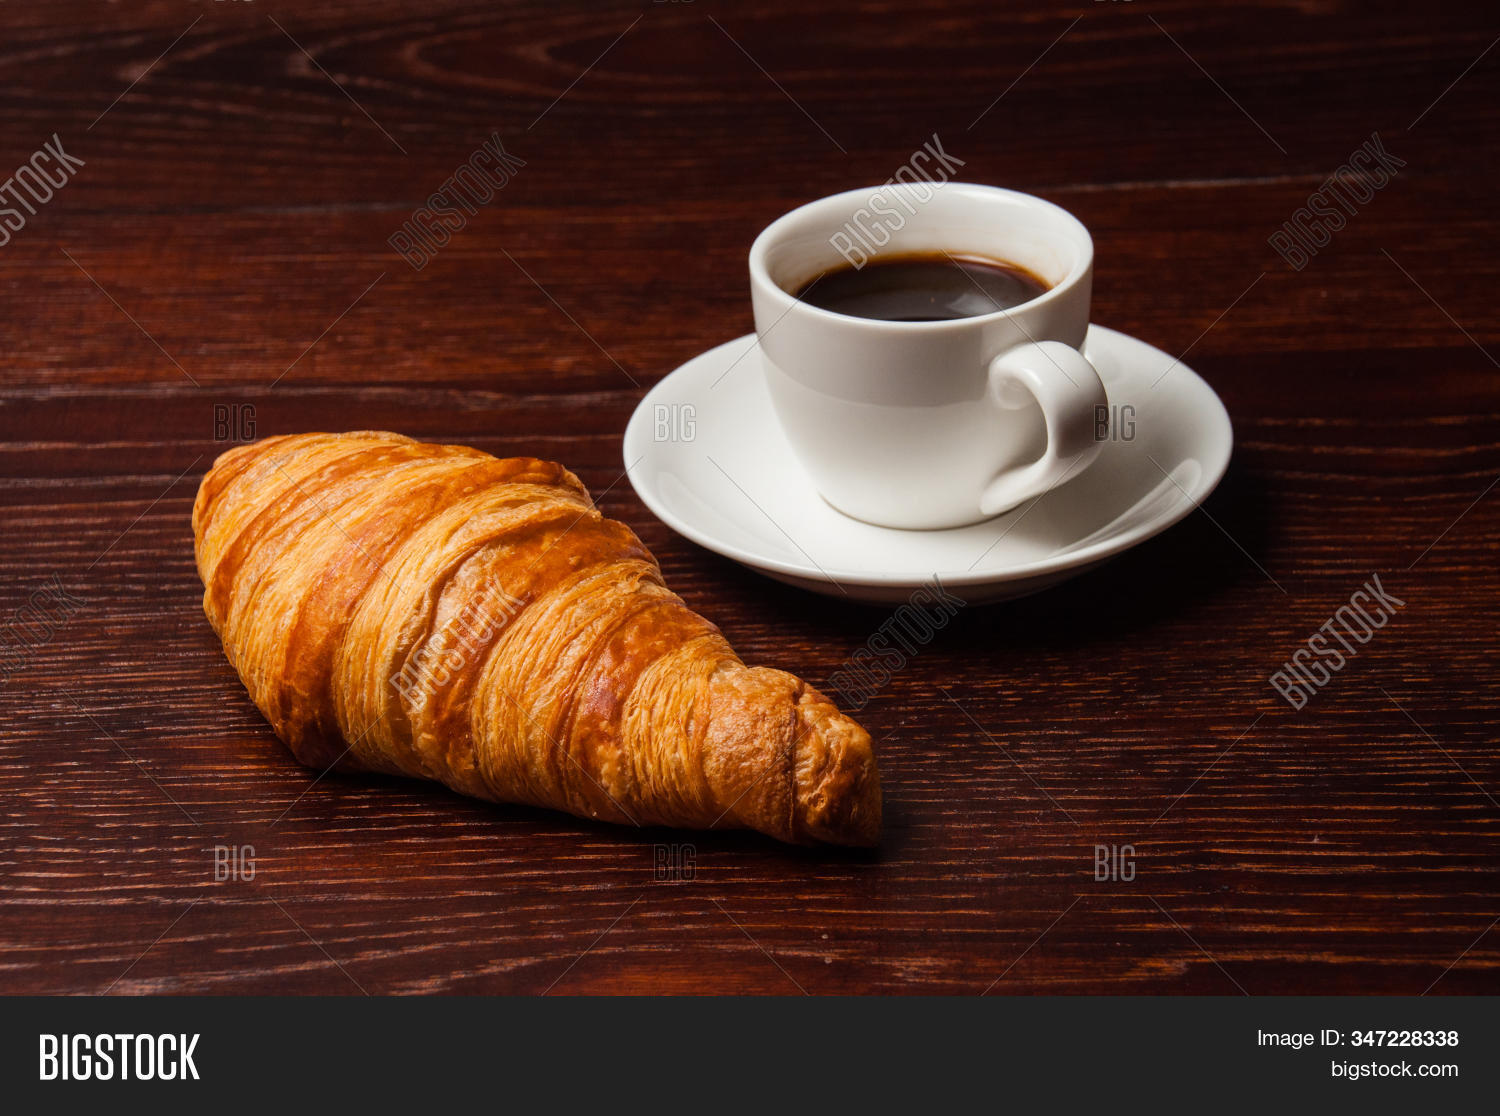 Tasty Breakfast Cup Image Photo Free Trial Bigstock